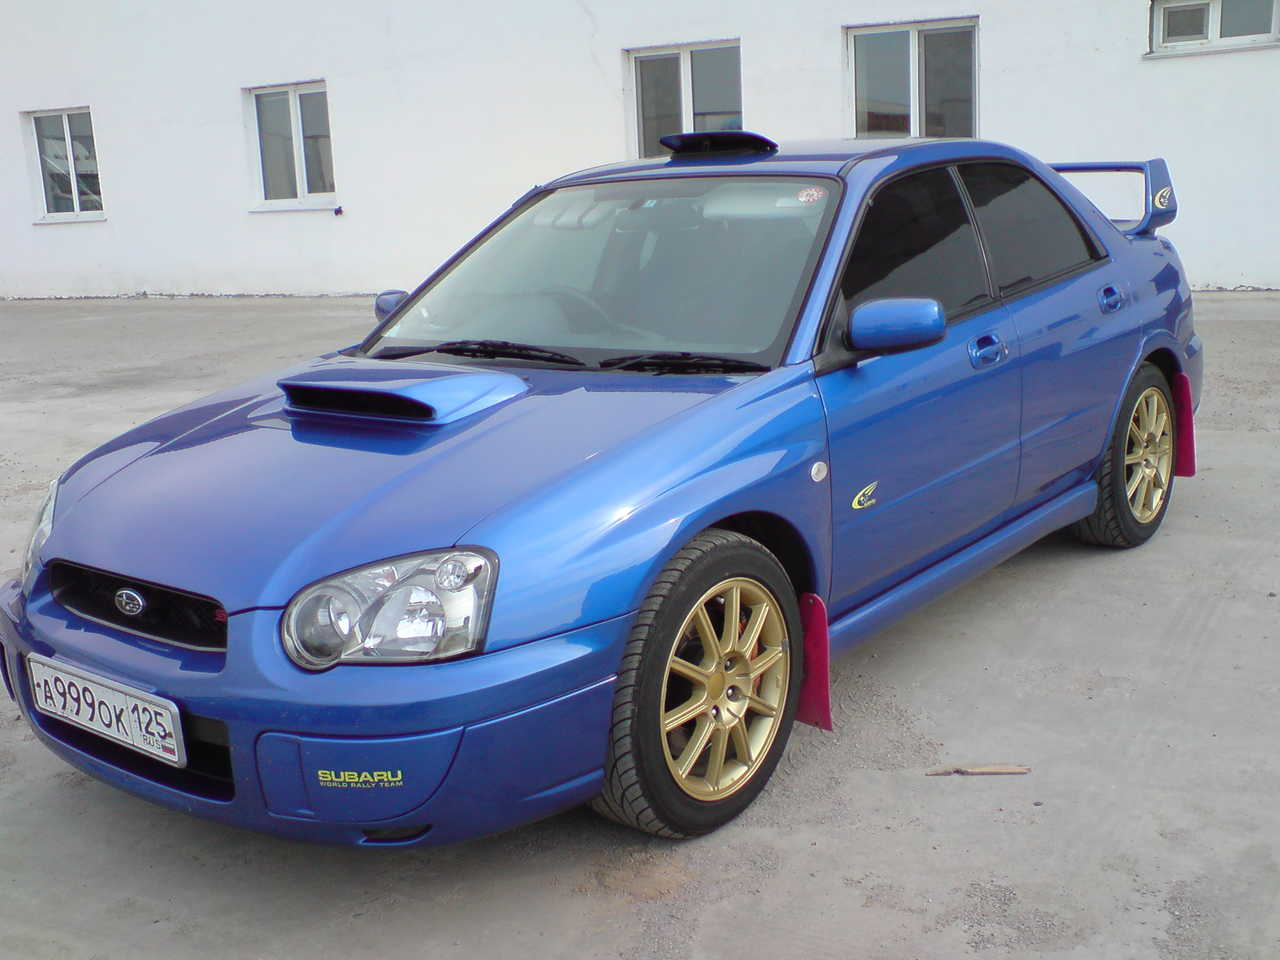 2004 subaru impreza wrx sti pictures gasoline. Black Bedroom Furniture Sets. Home Design Ideas